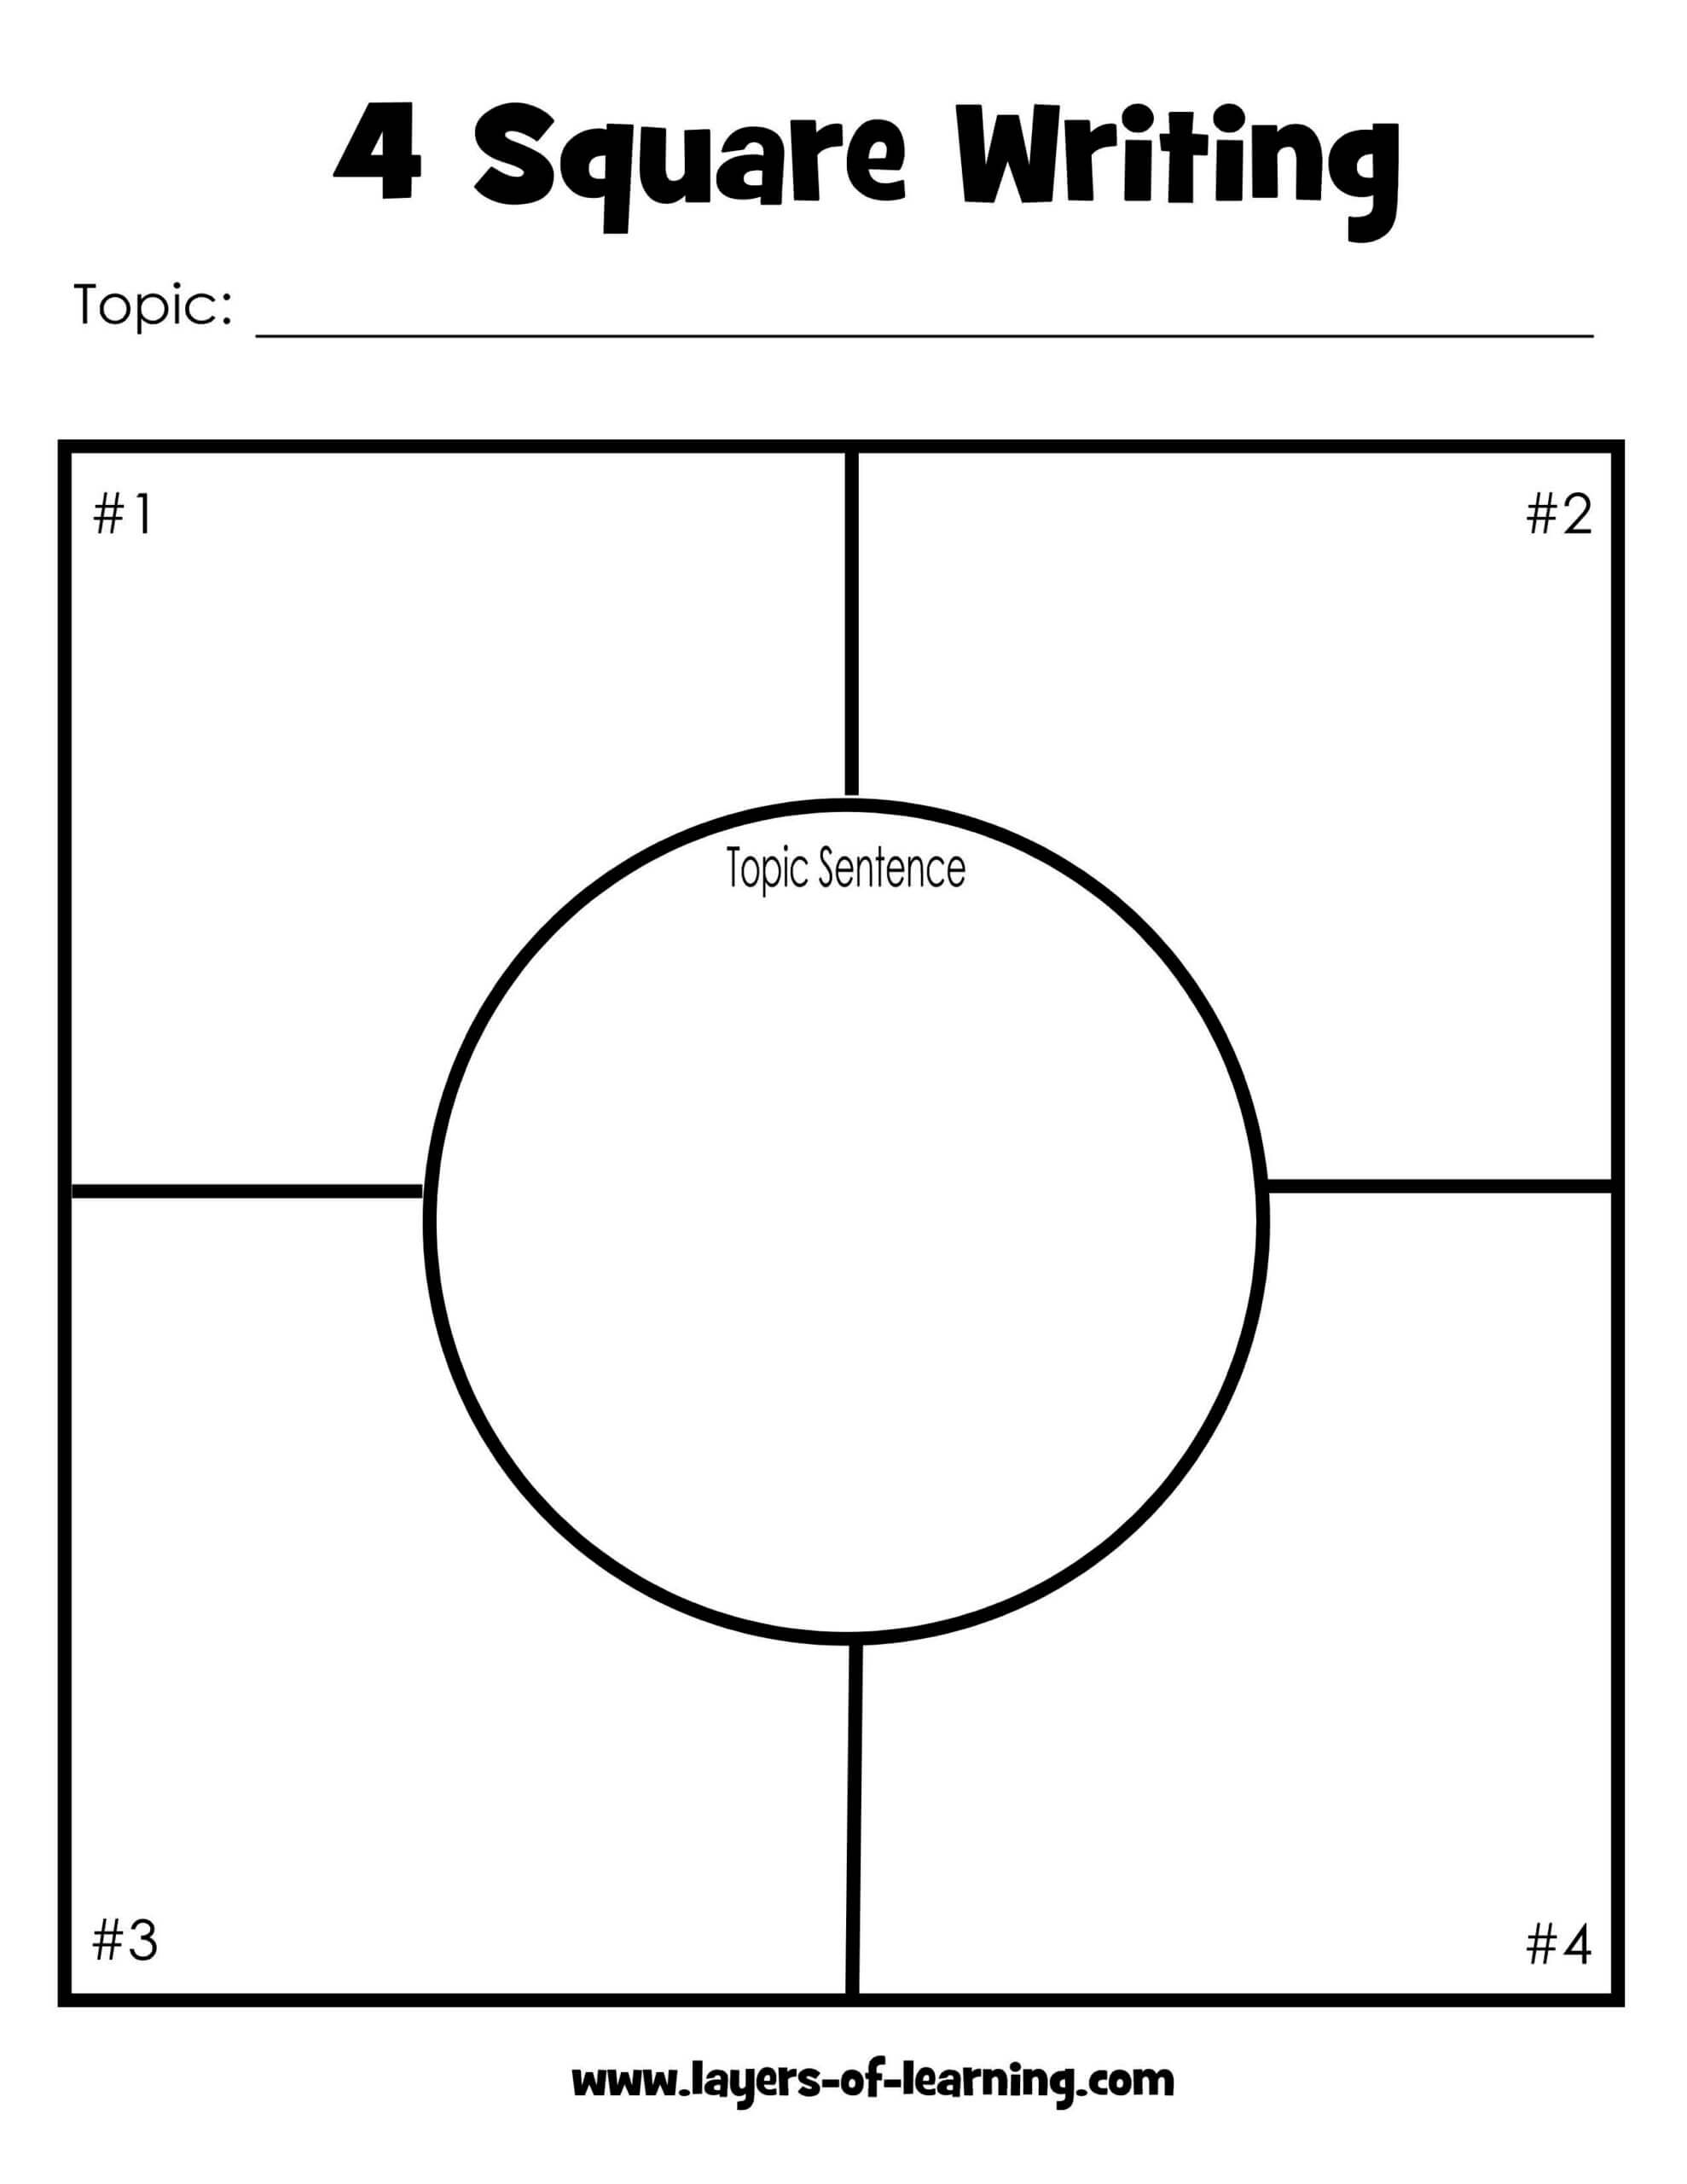 5 Best Photos Of Four Square Writing Template Printable Intended For Blank Four Square Writing Template